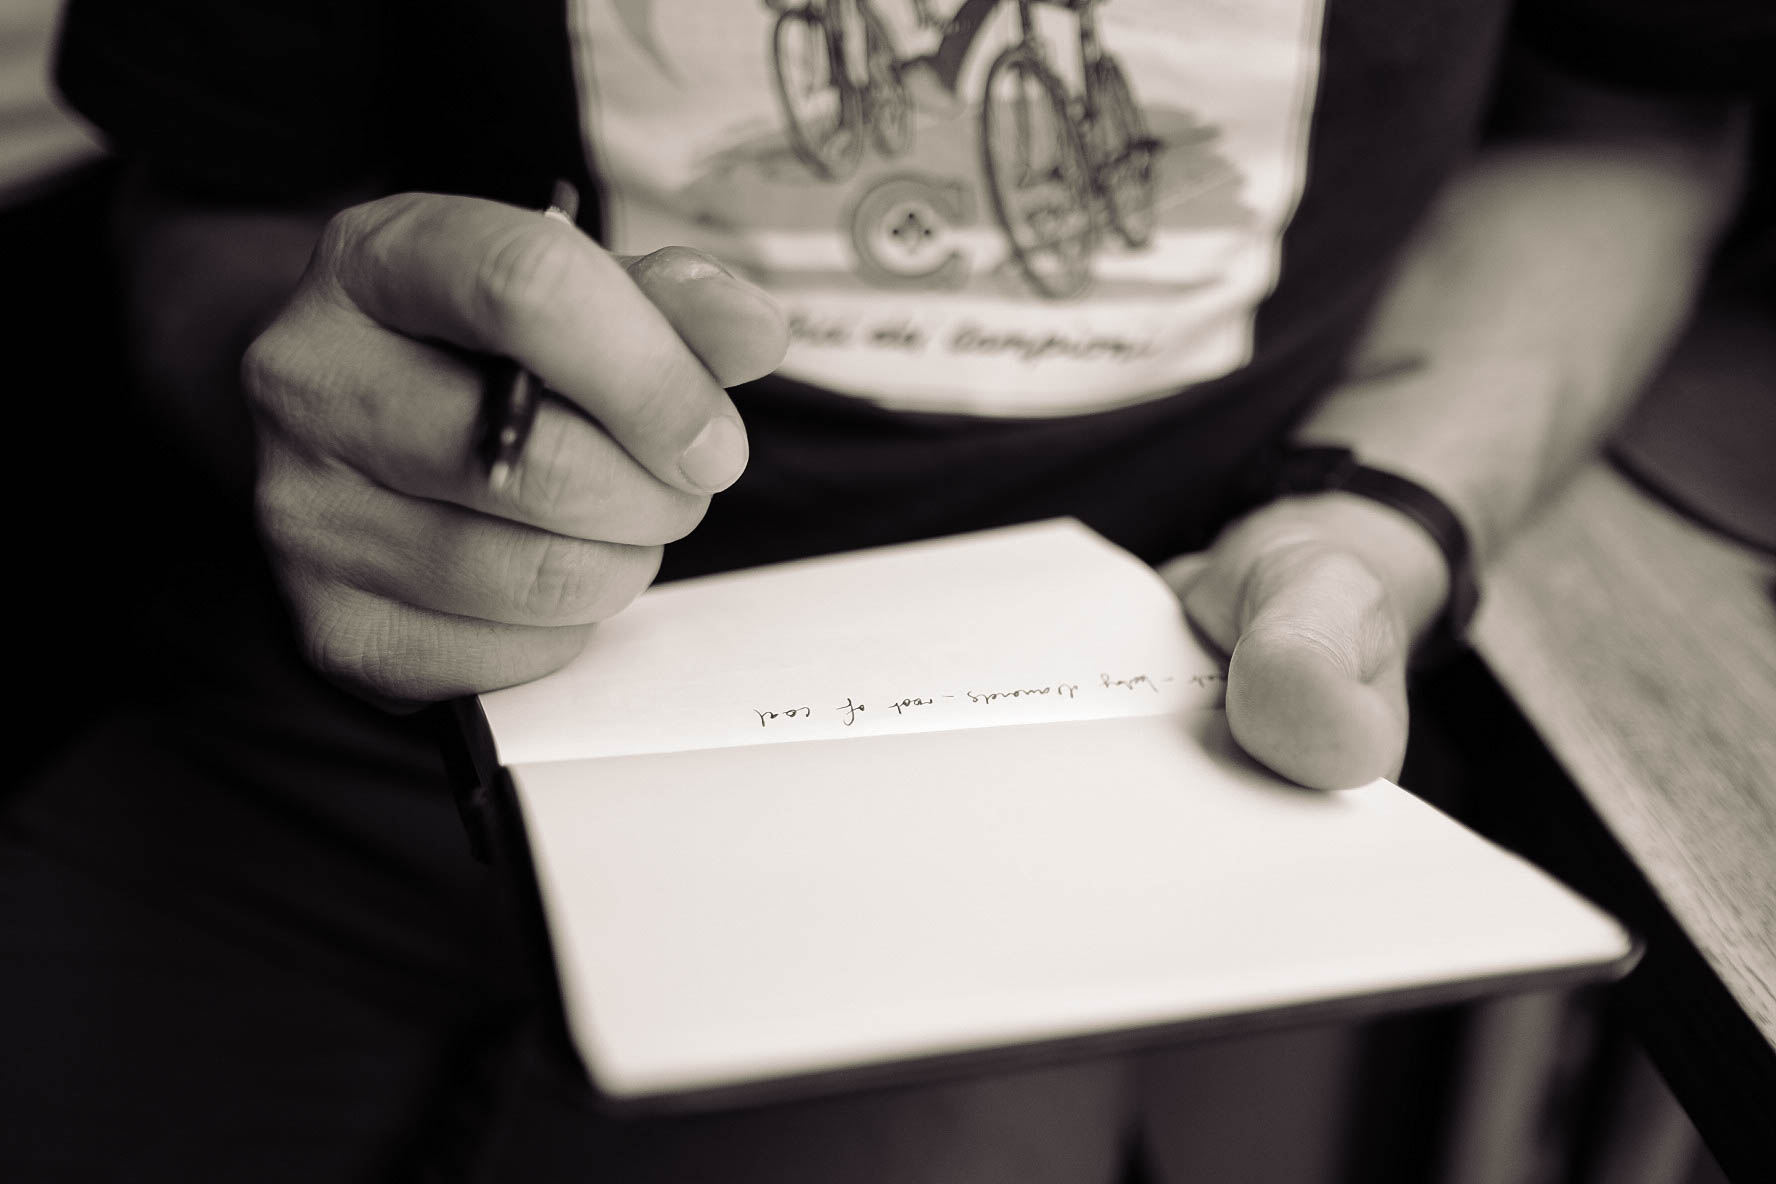 Men's Journaling - Every Monday @ 6pm at New Life Church